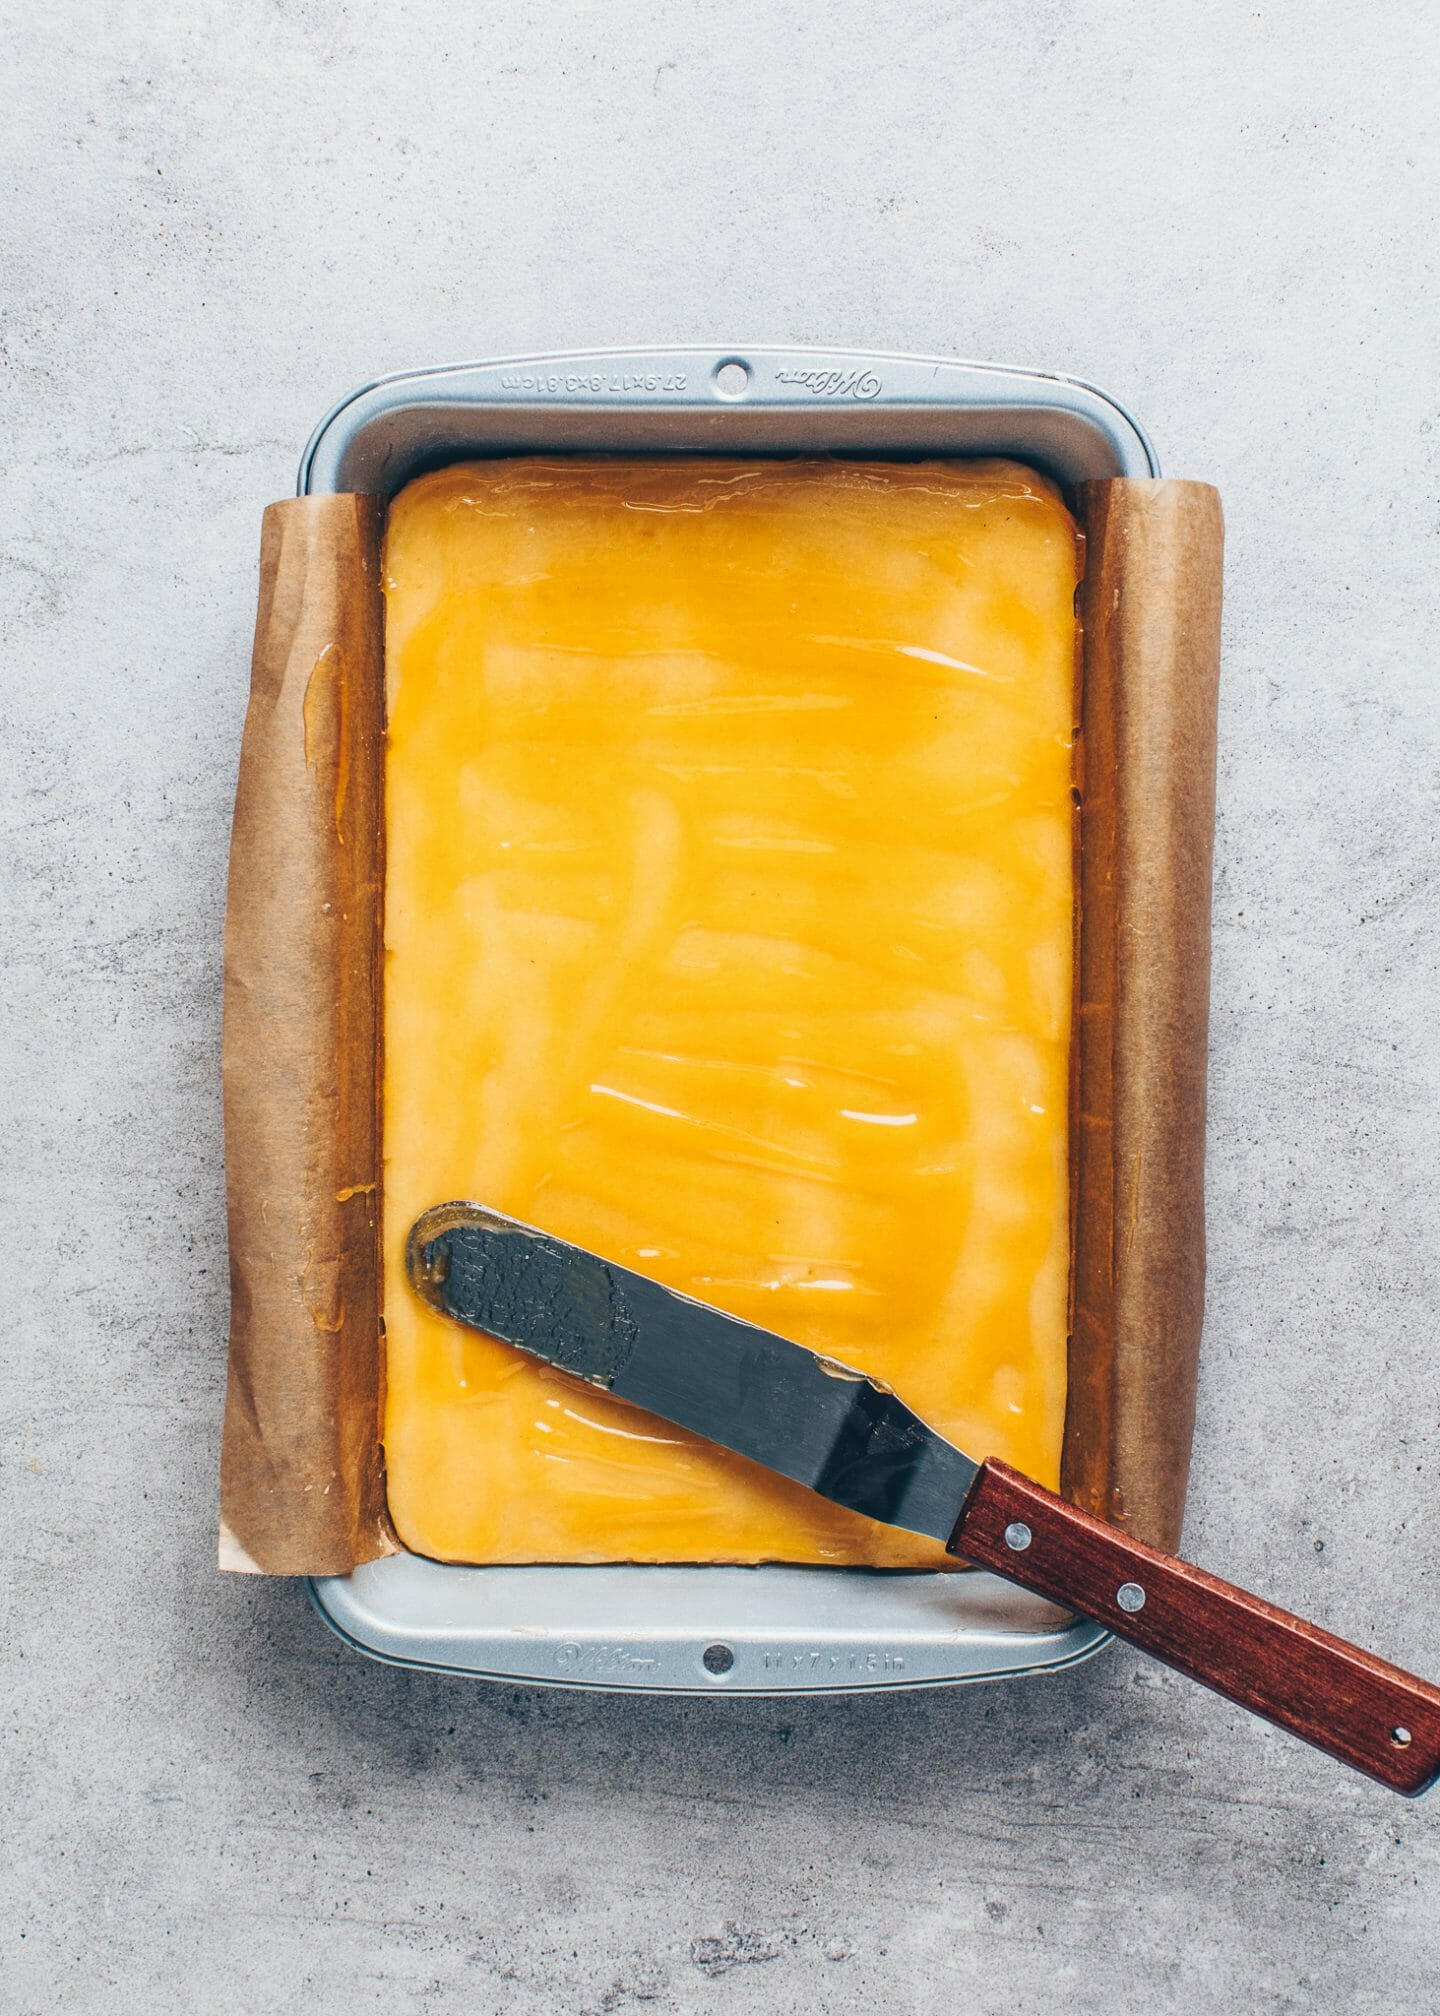 shortcrust pastry with apricot jam in a baking pan